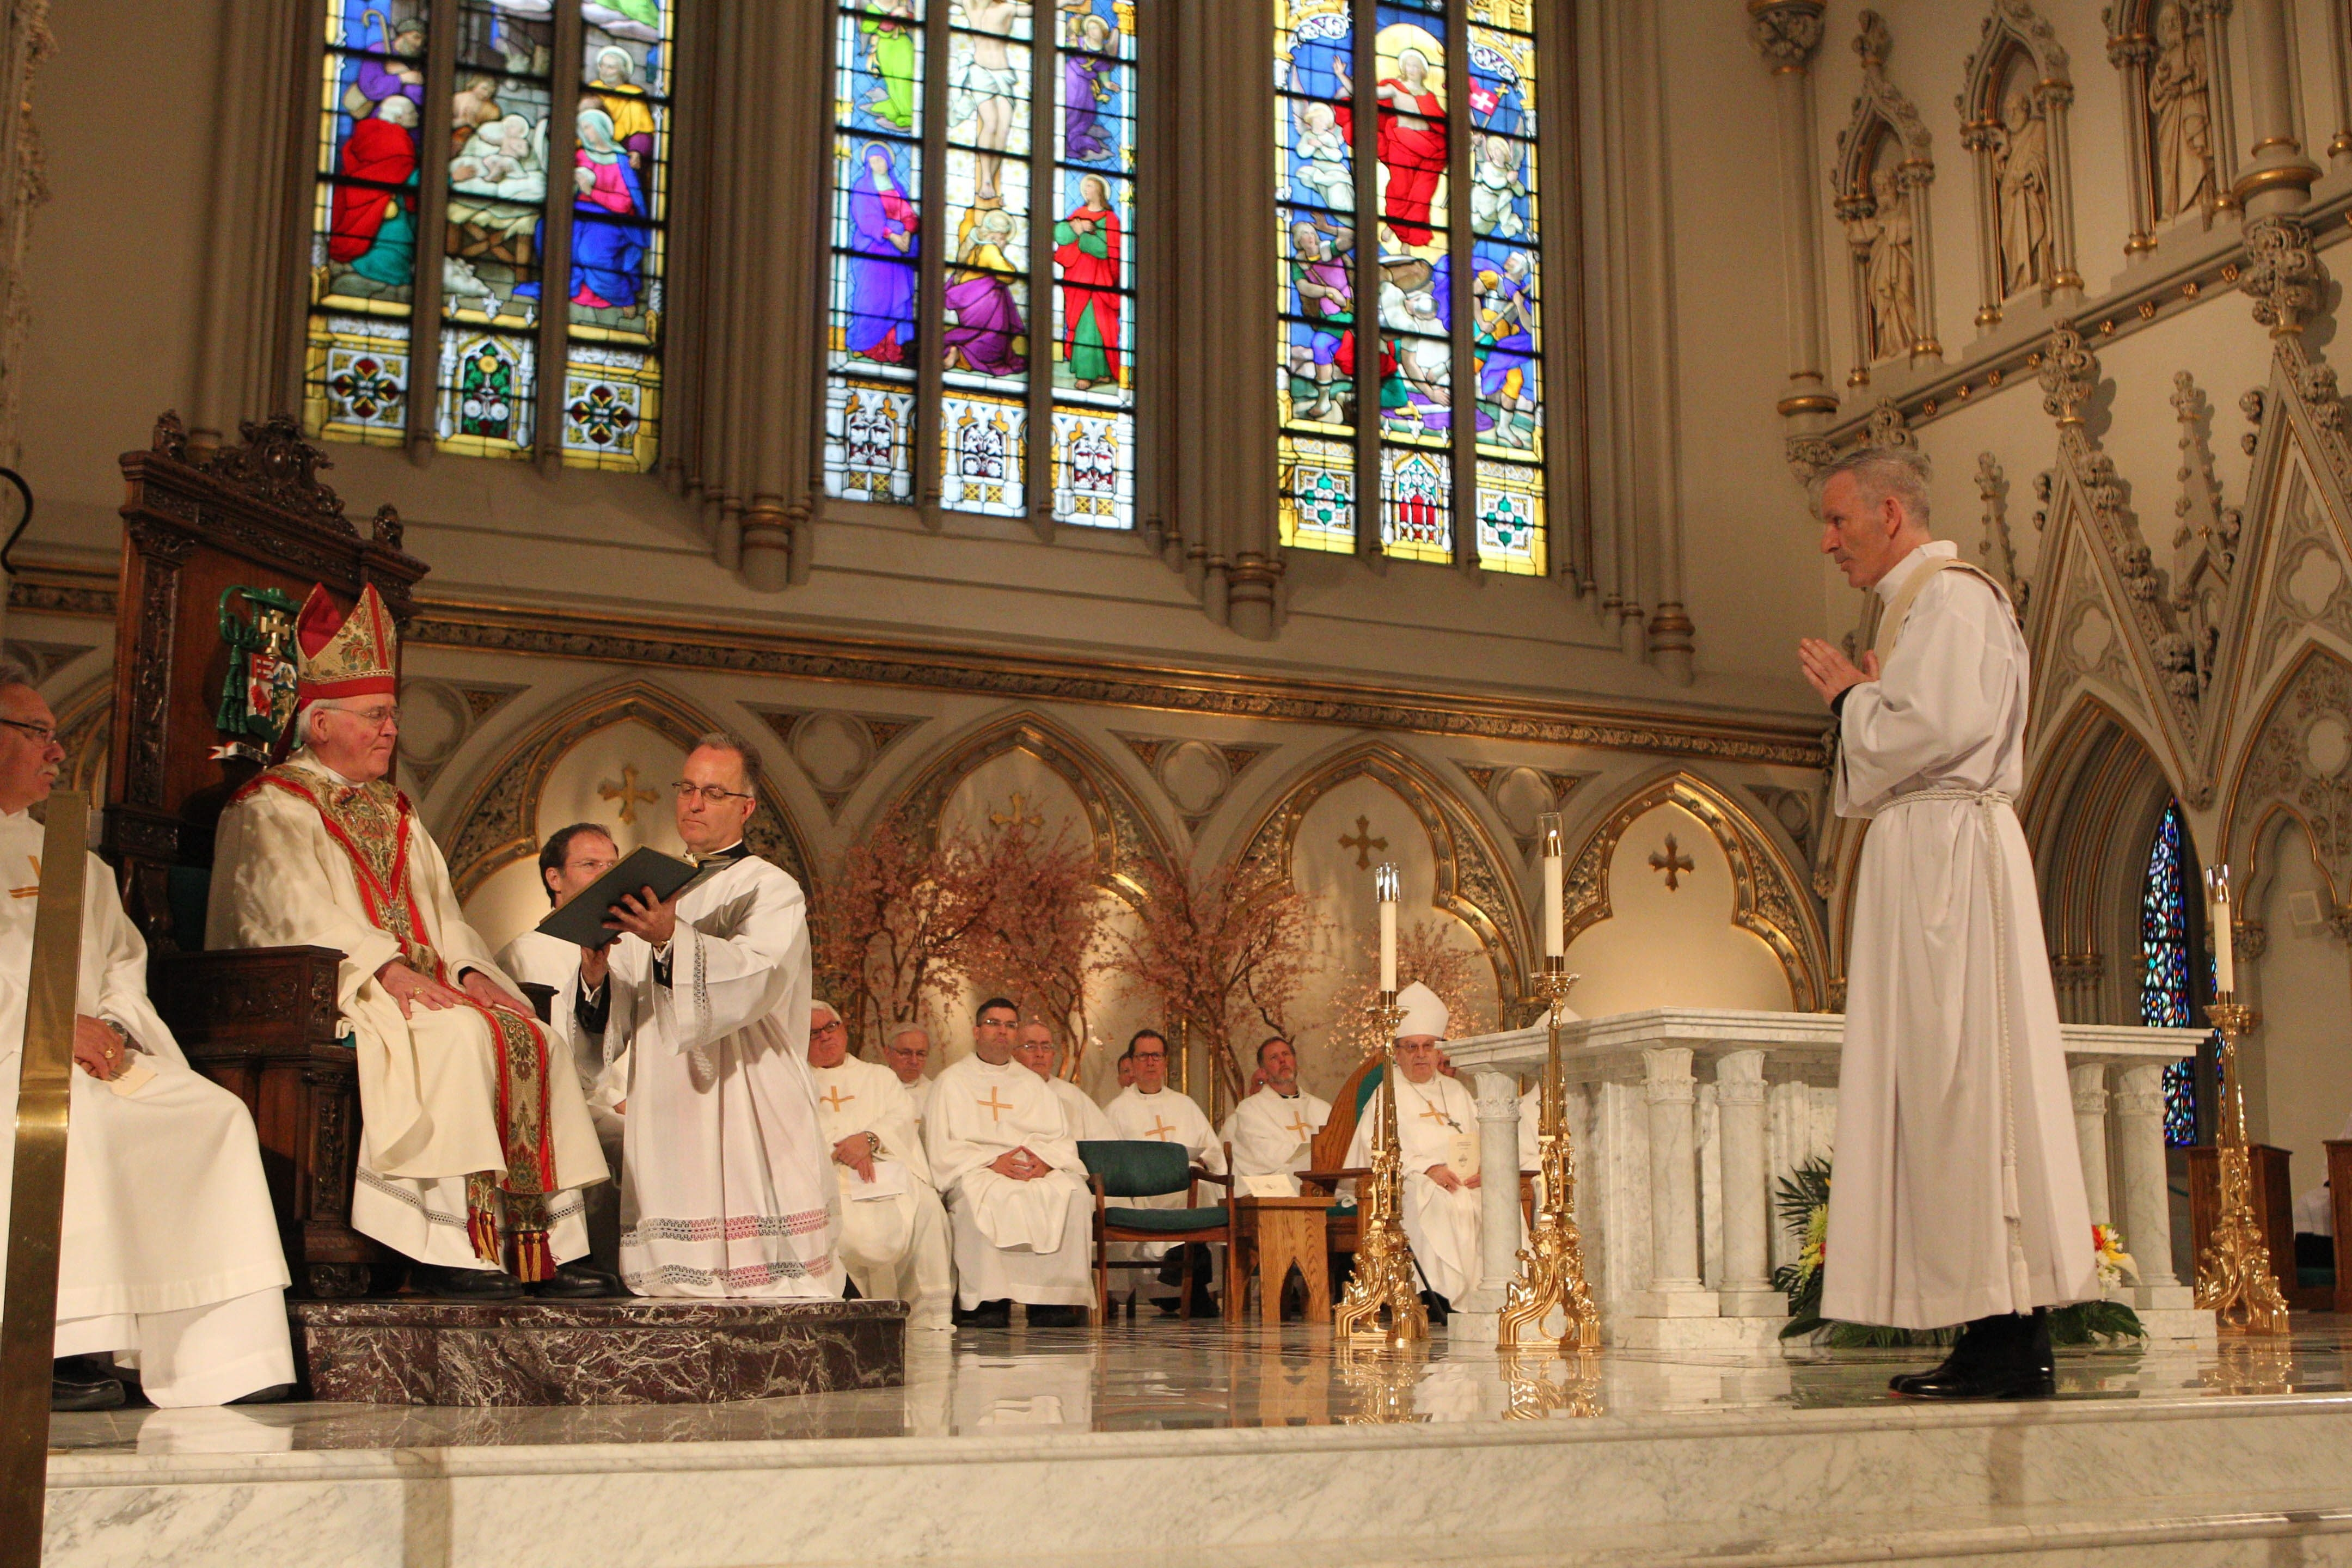 Bishop Richard J. Malone, left, listens as John E. Stanton Jr. pledges his obedience during his ordination ceremony Saturday in St. Joseph Cathedral. At age 42, Stanton is one of the youngest priests in the diocese.